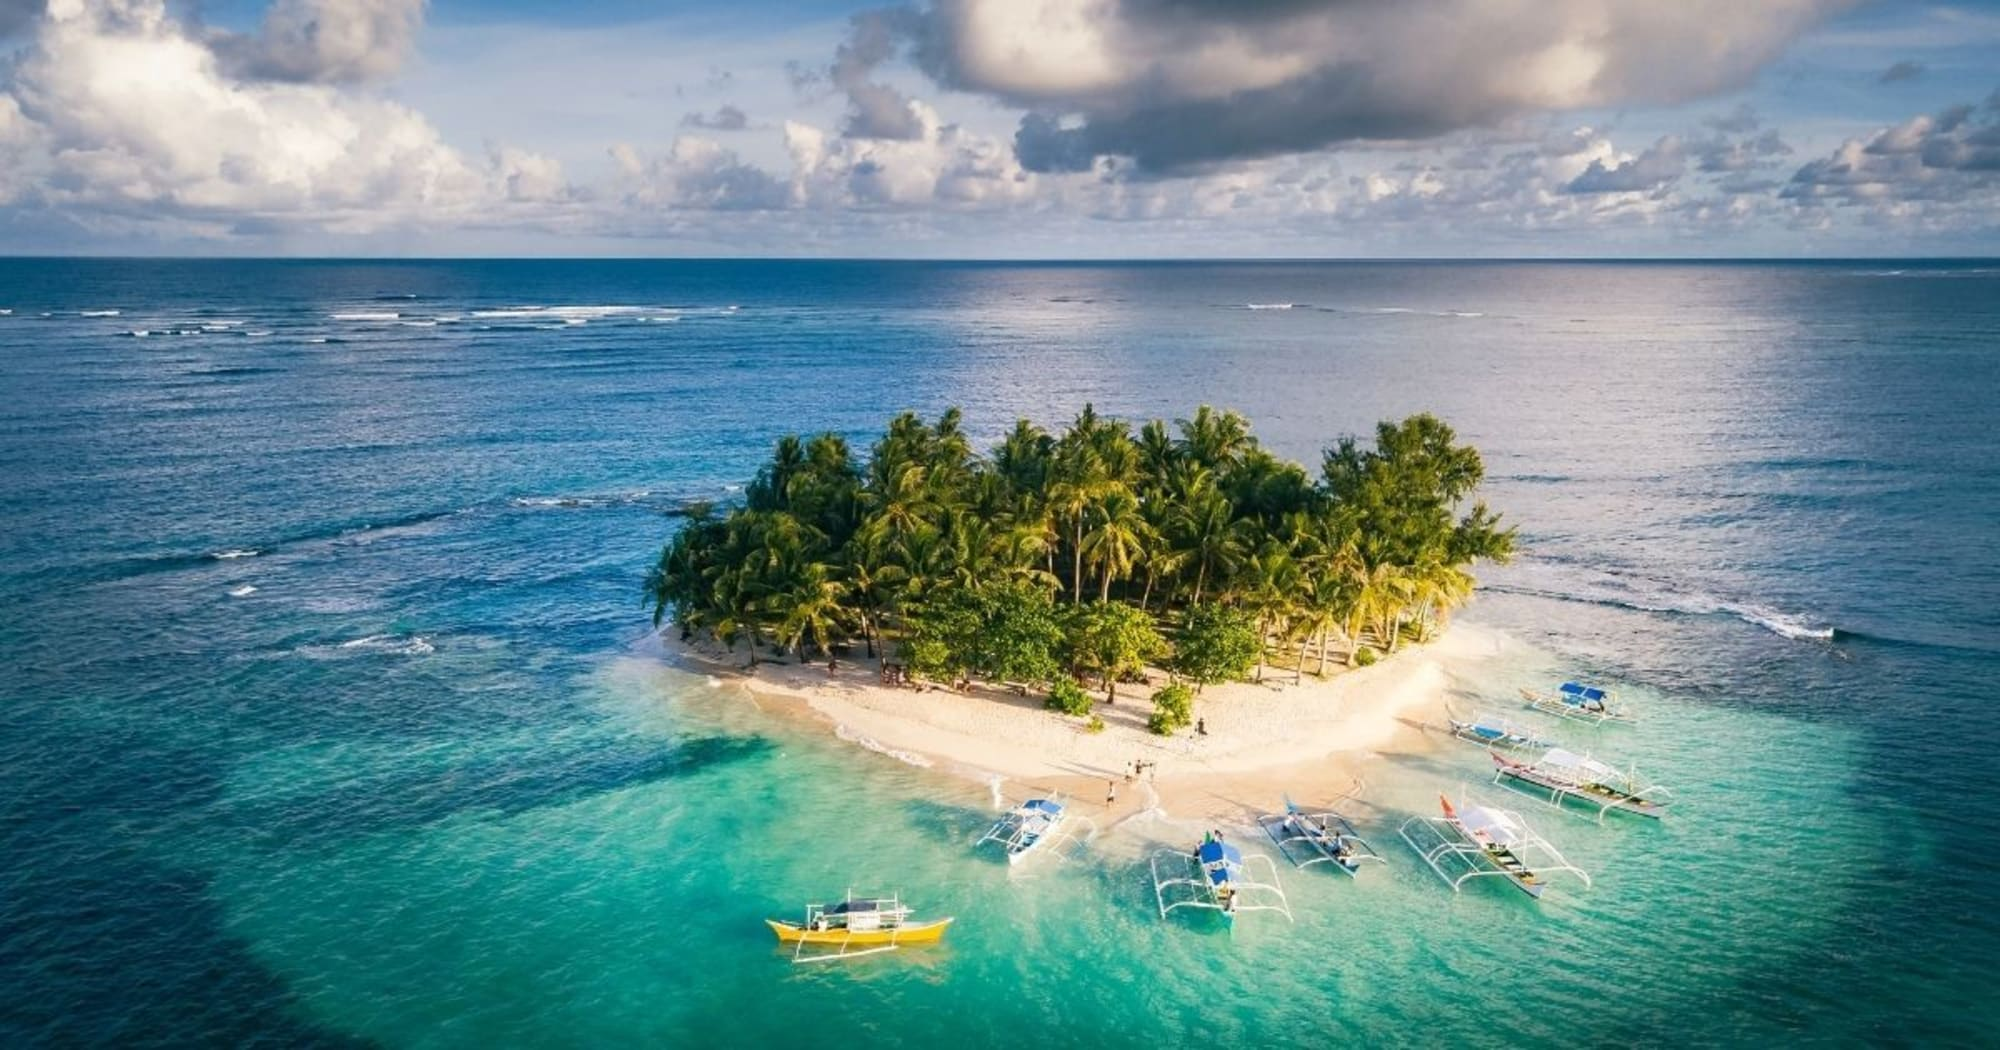 Siargao Island is now open to tourists from NCR; imposes liquor ban, prohibits parties and videoke